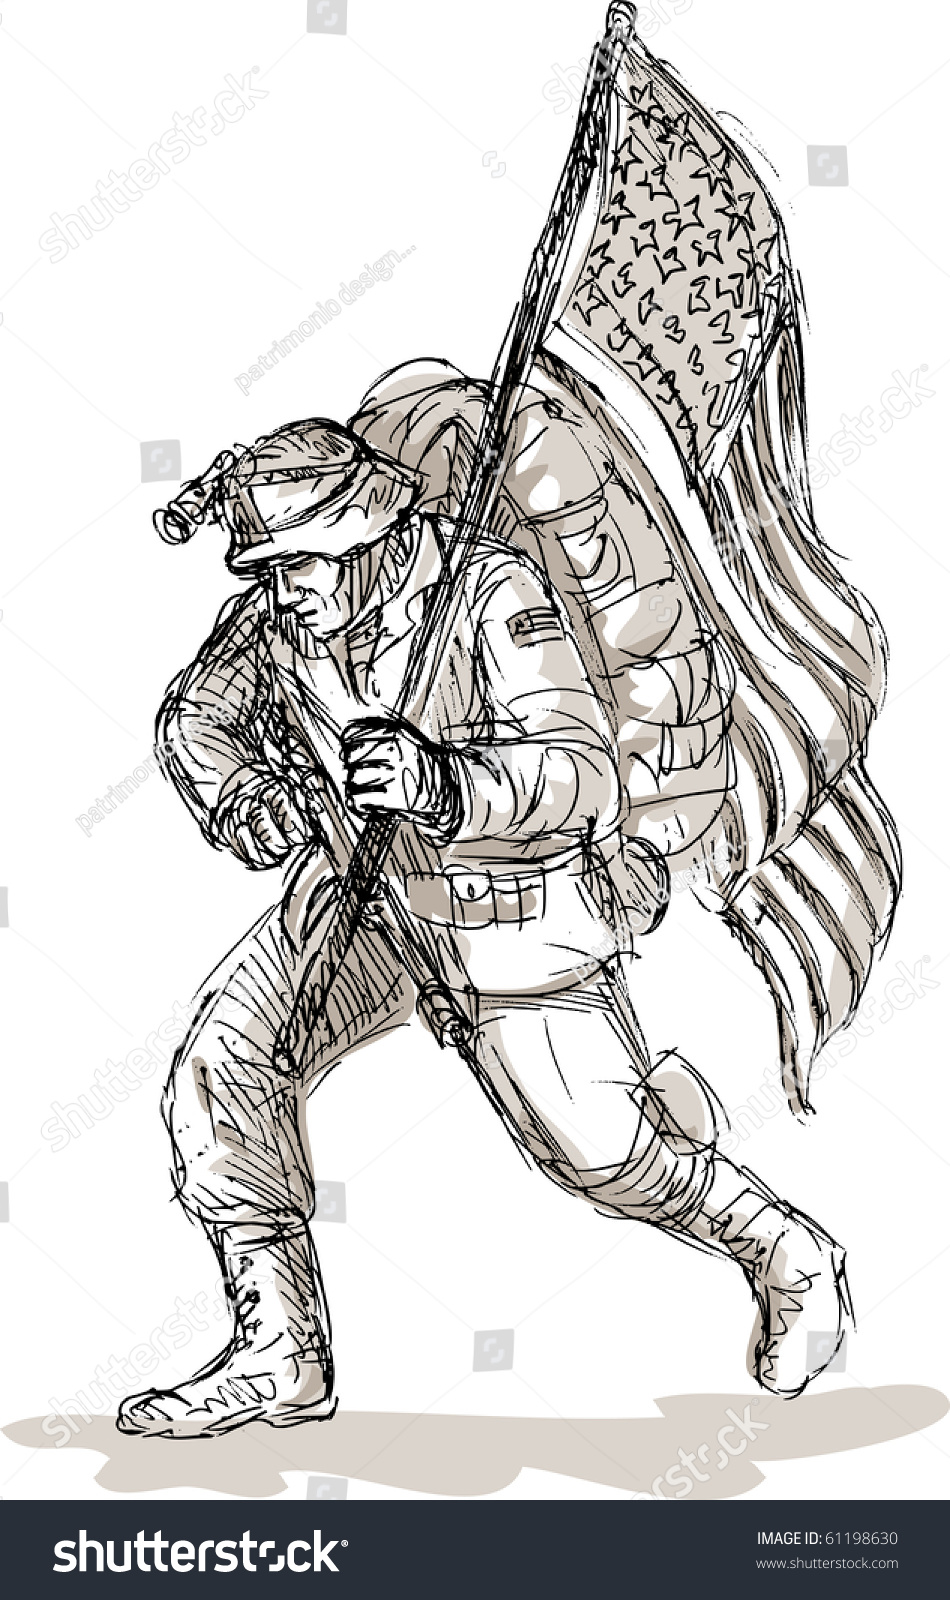 hand drawn sketch dejected american soldier stock